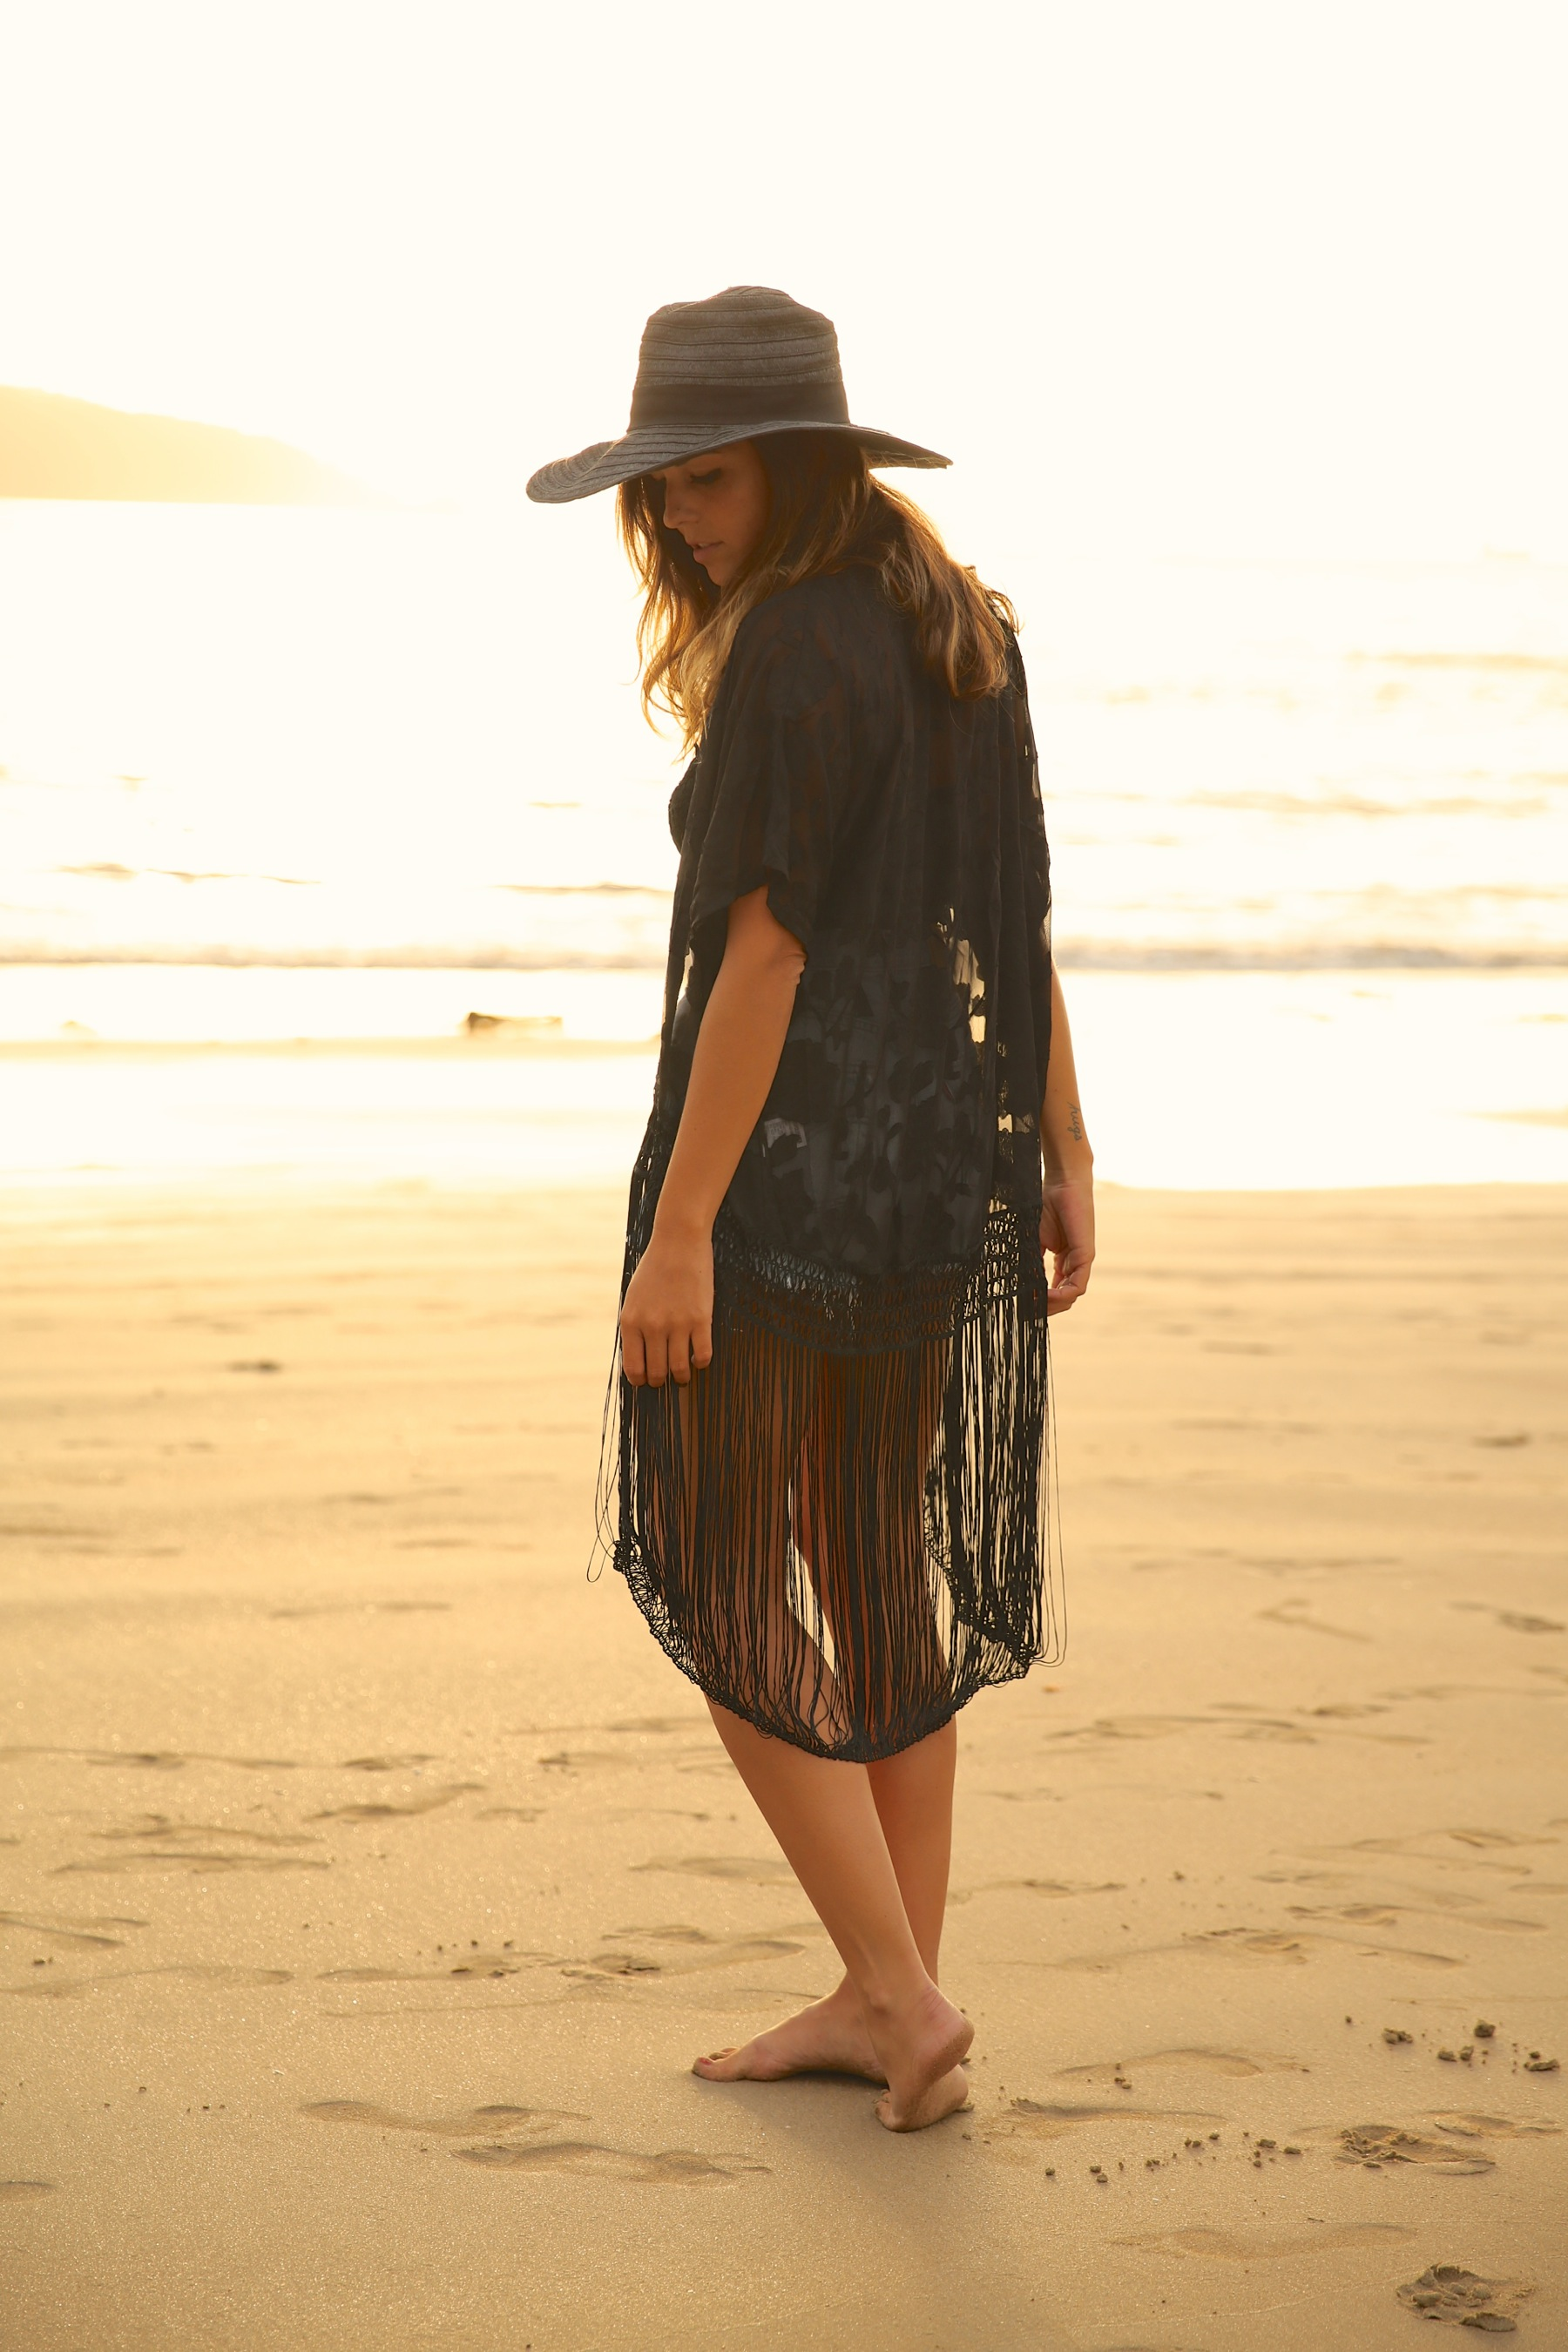 trendy_taste-look-outfit-street_style-ootd-blog-blogger-fashion_spain-moda_españa-sunset-verano-kimono-summer-levi's-denim_shorts-shorts_vaqueros-sombrero-pamela-hat-15